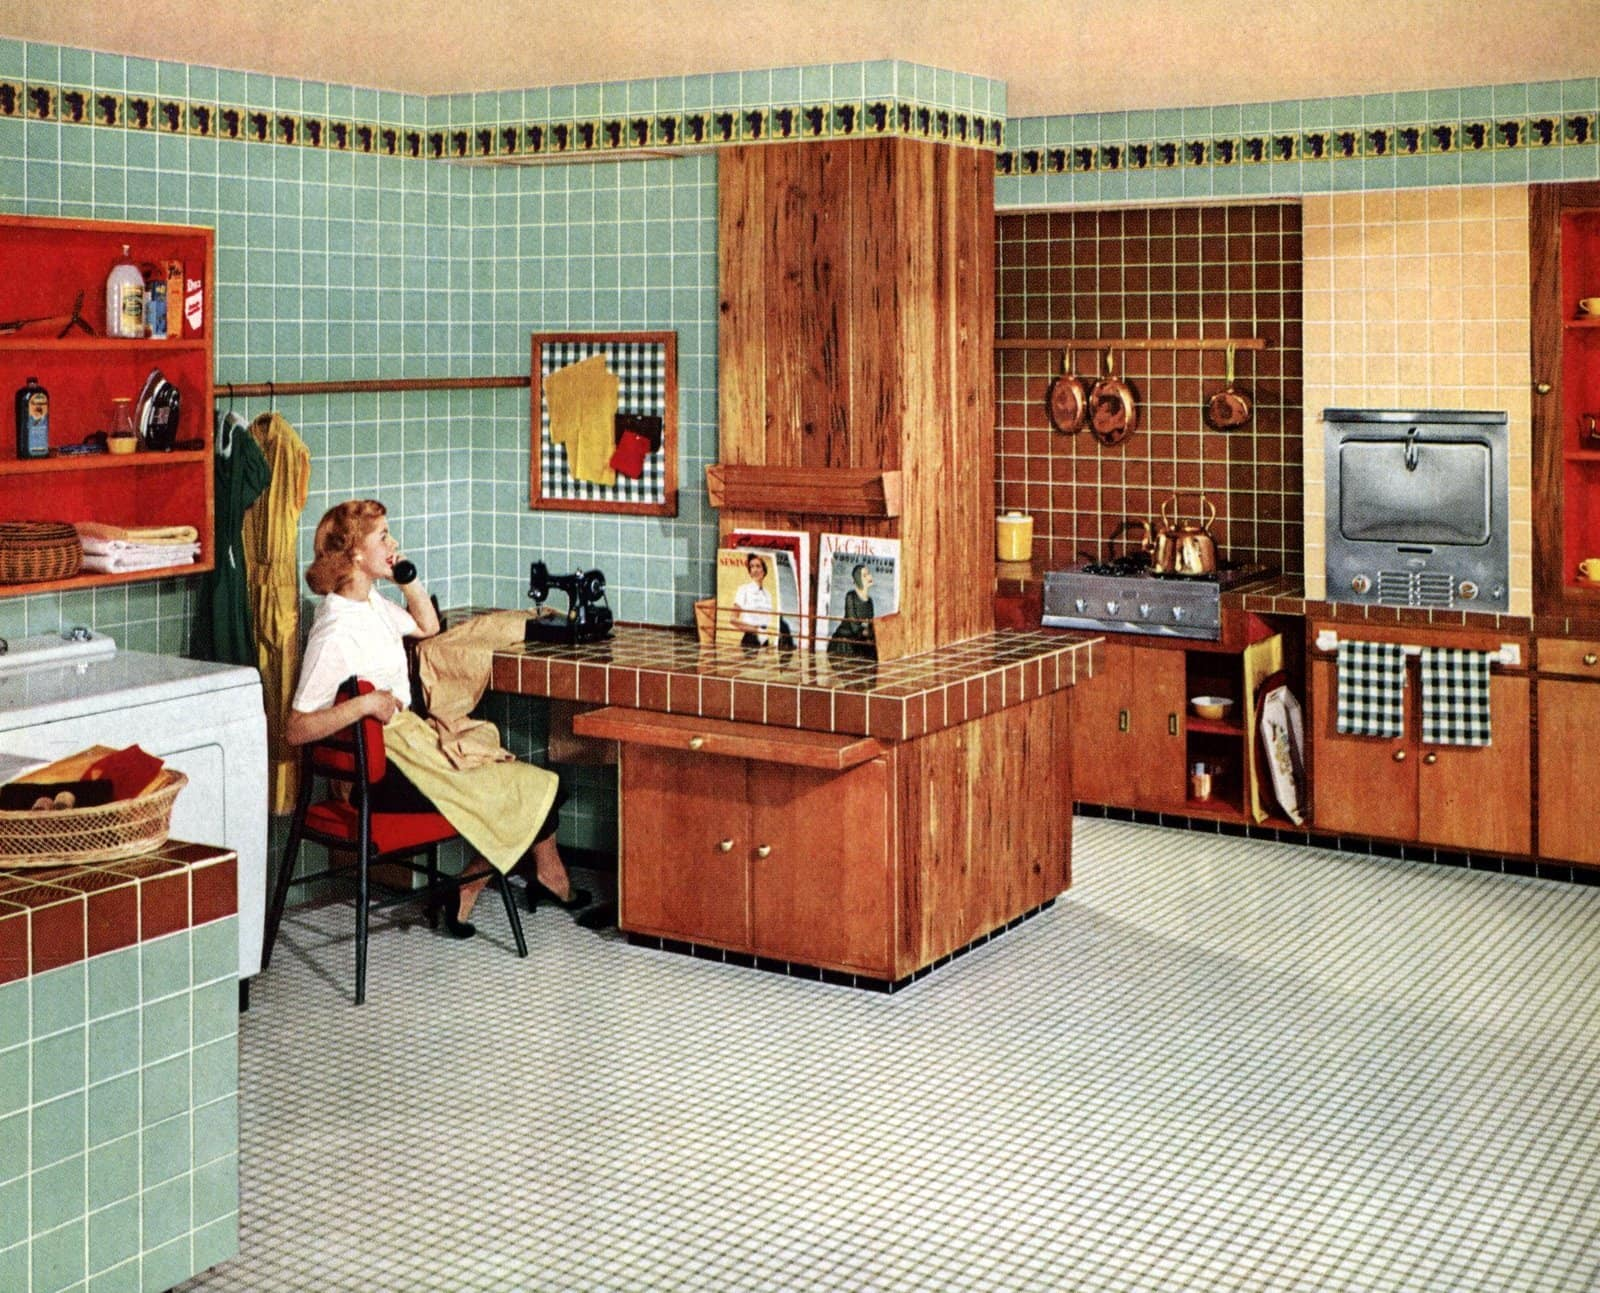 Vintage kitchen-laundry area with tile walls, counters and floors